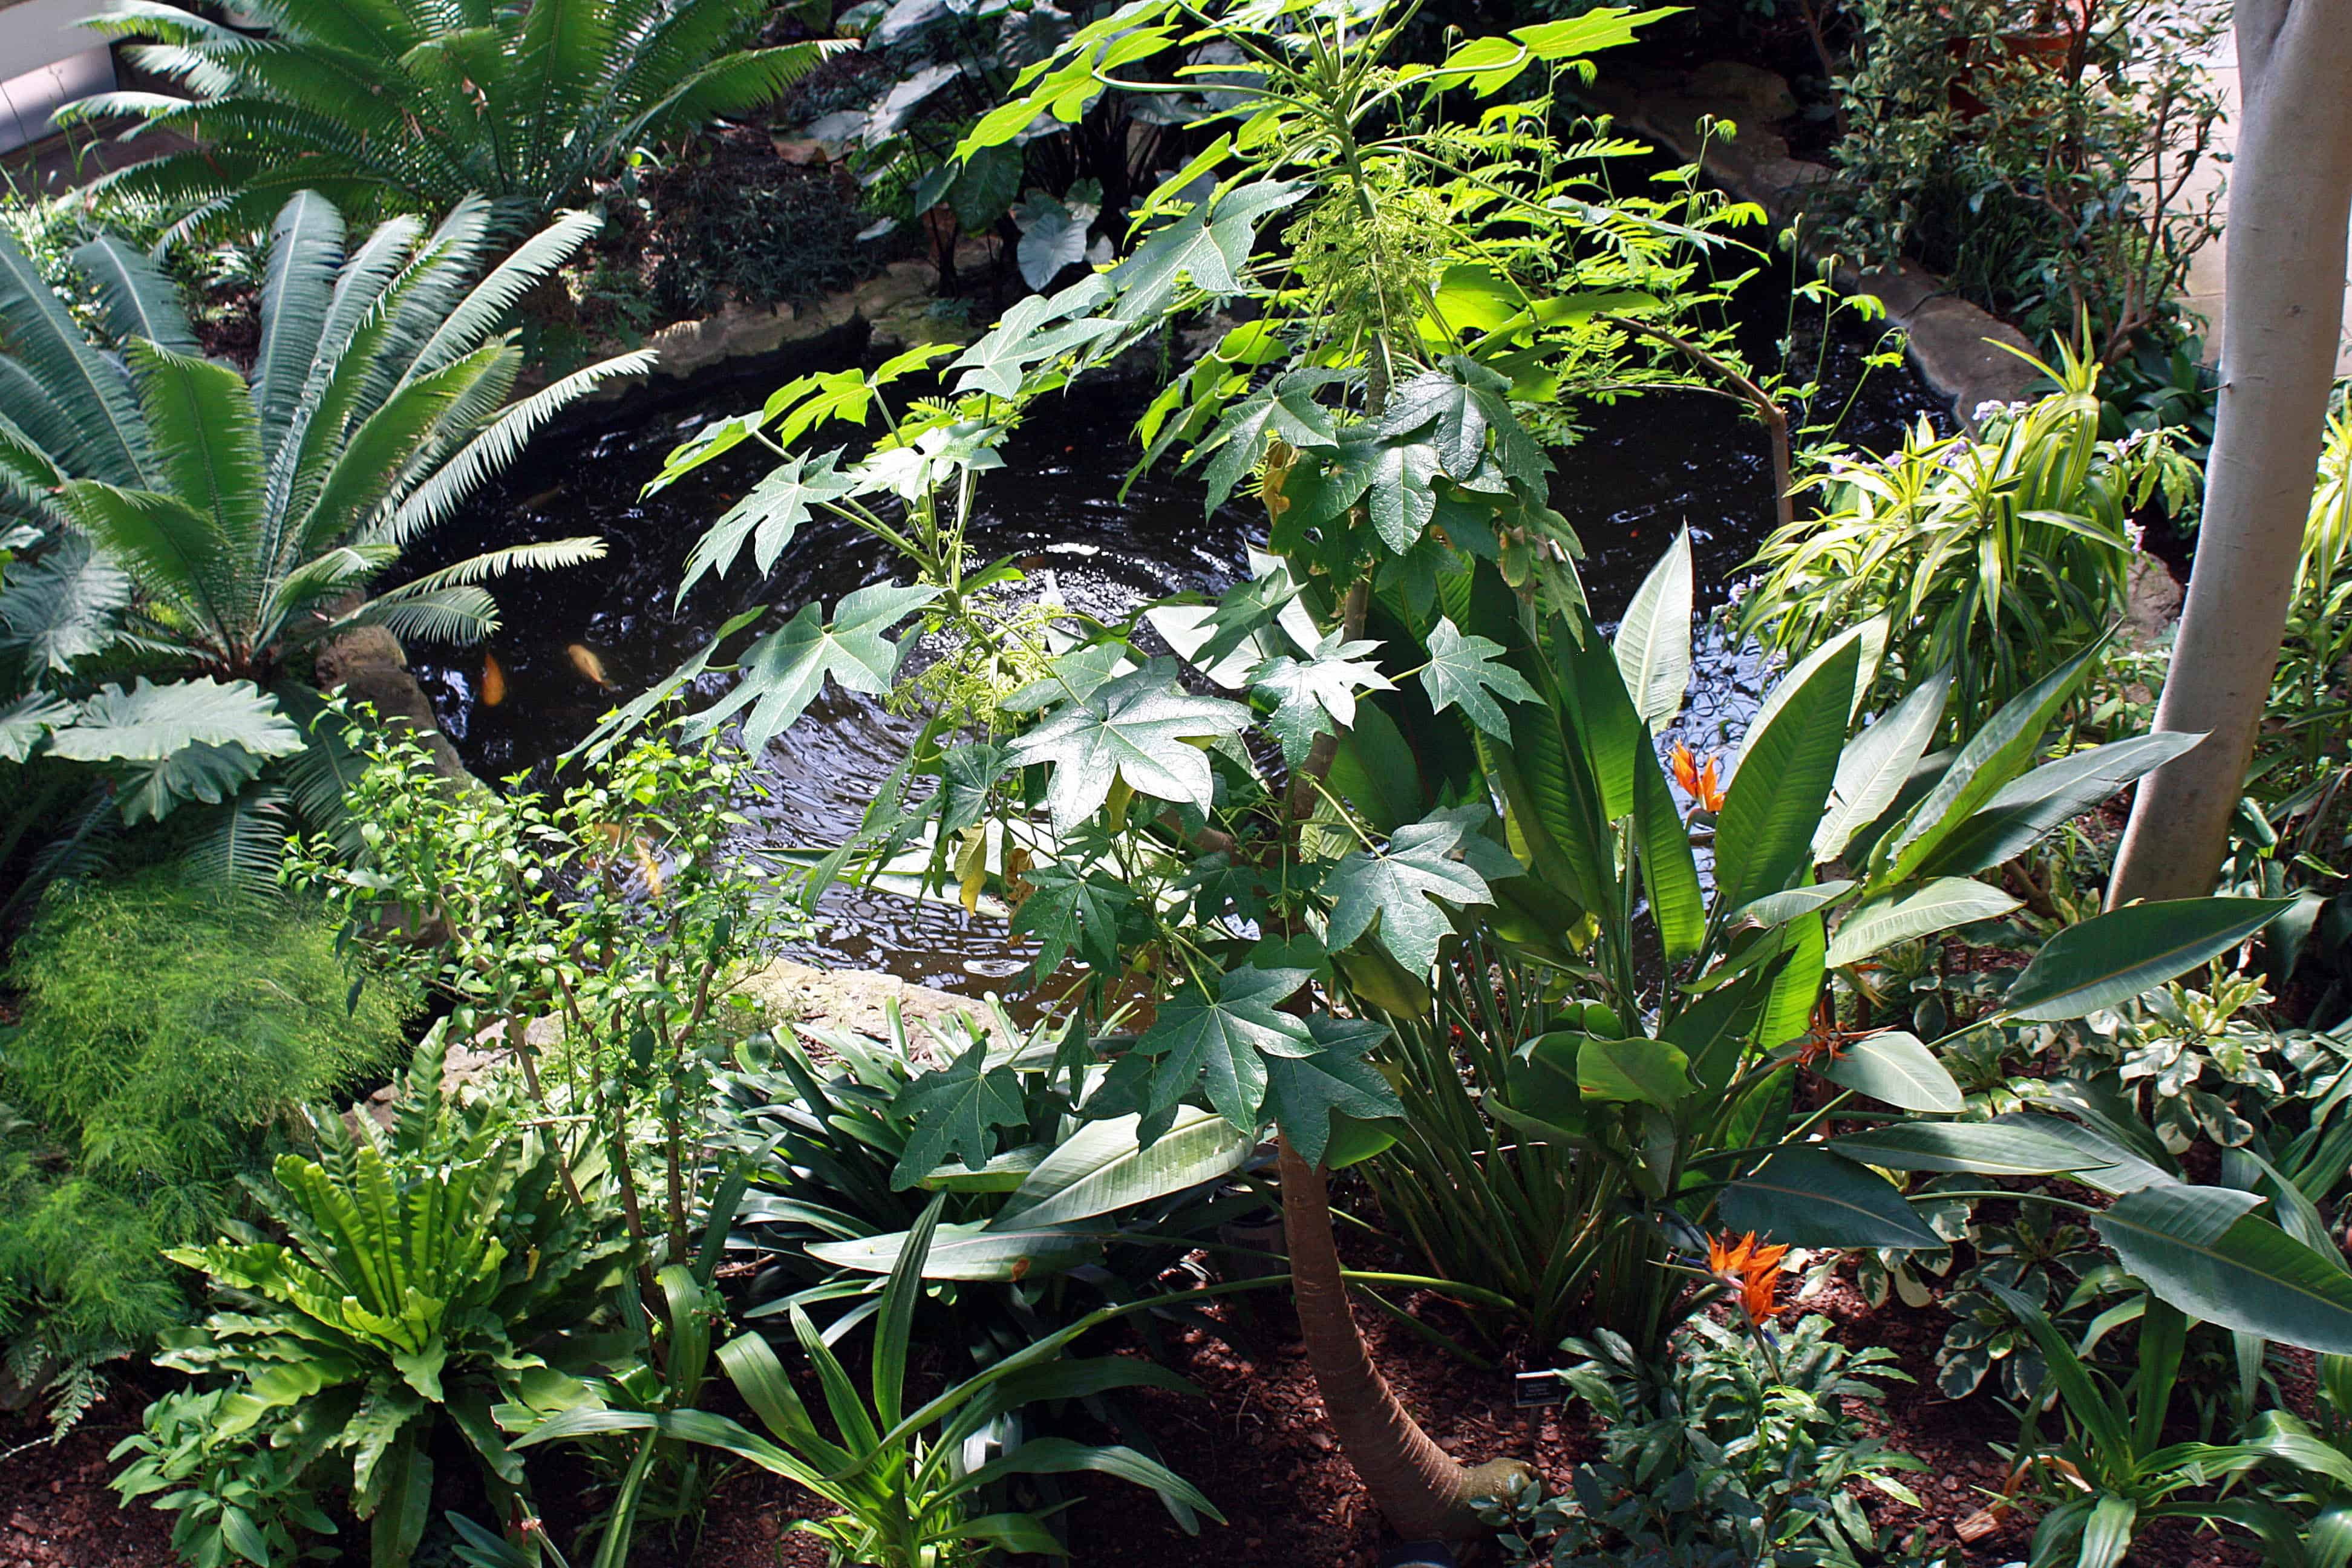 Carp pond in Barbican Conservatory, London